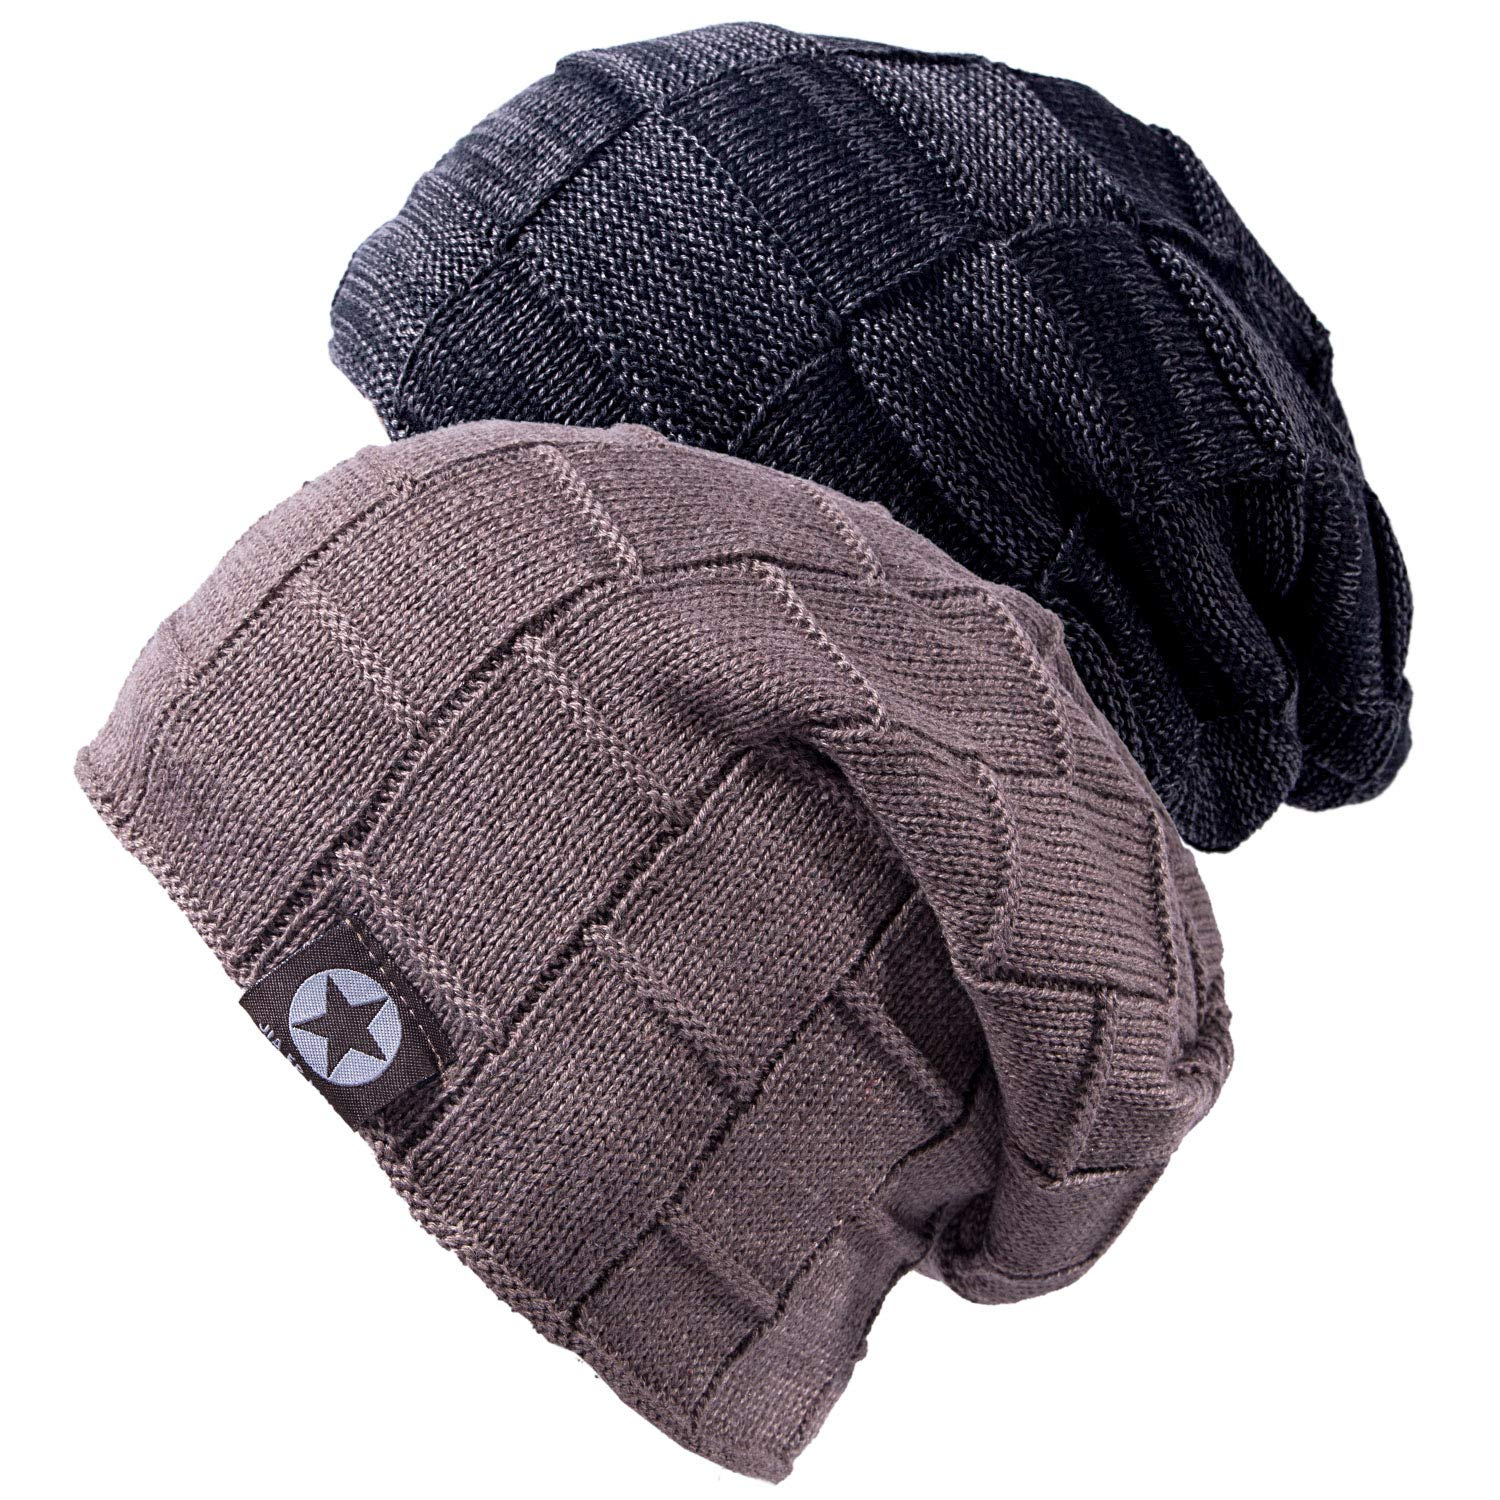 Mens Beanie Hat - Winter Warm Soft Thick Slouchy Knit Caps for Men and Women  ( c166010845d8